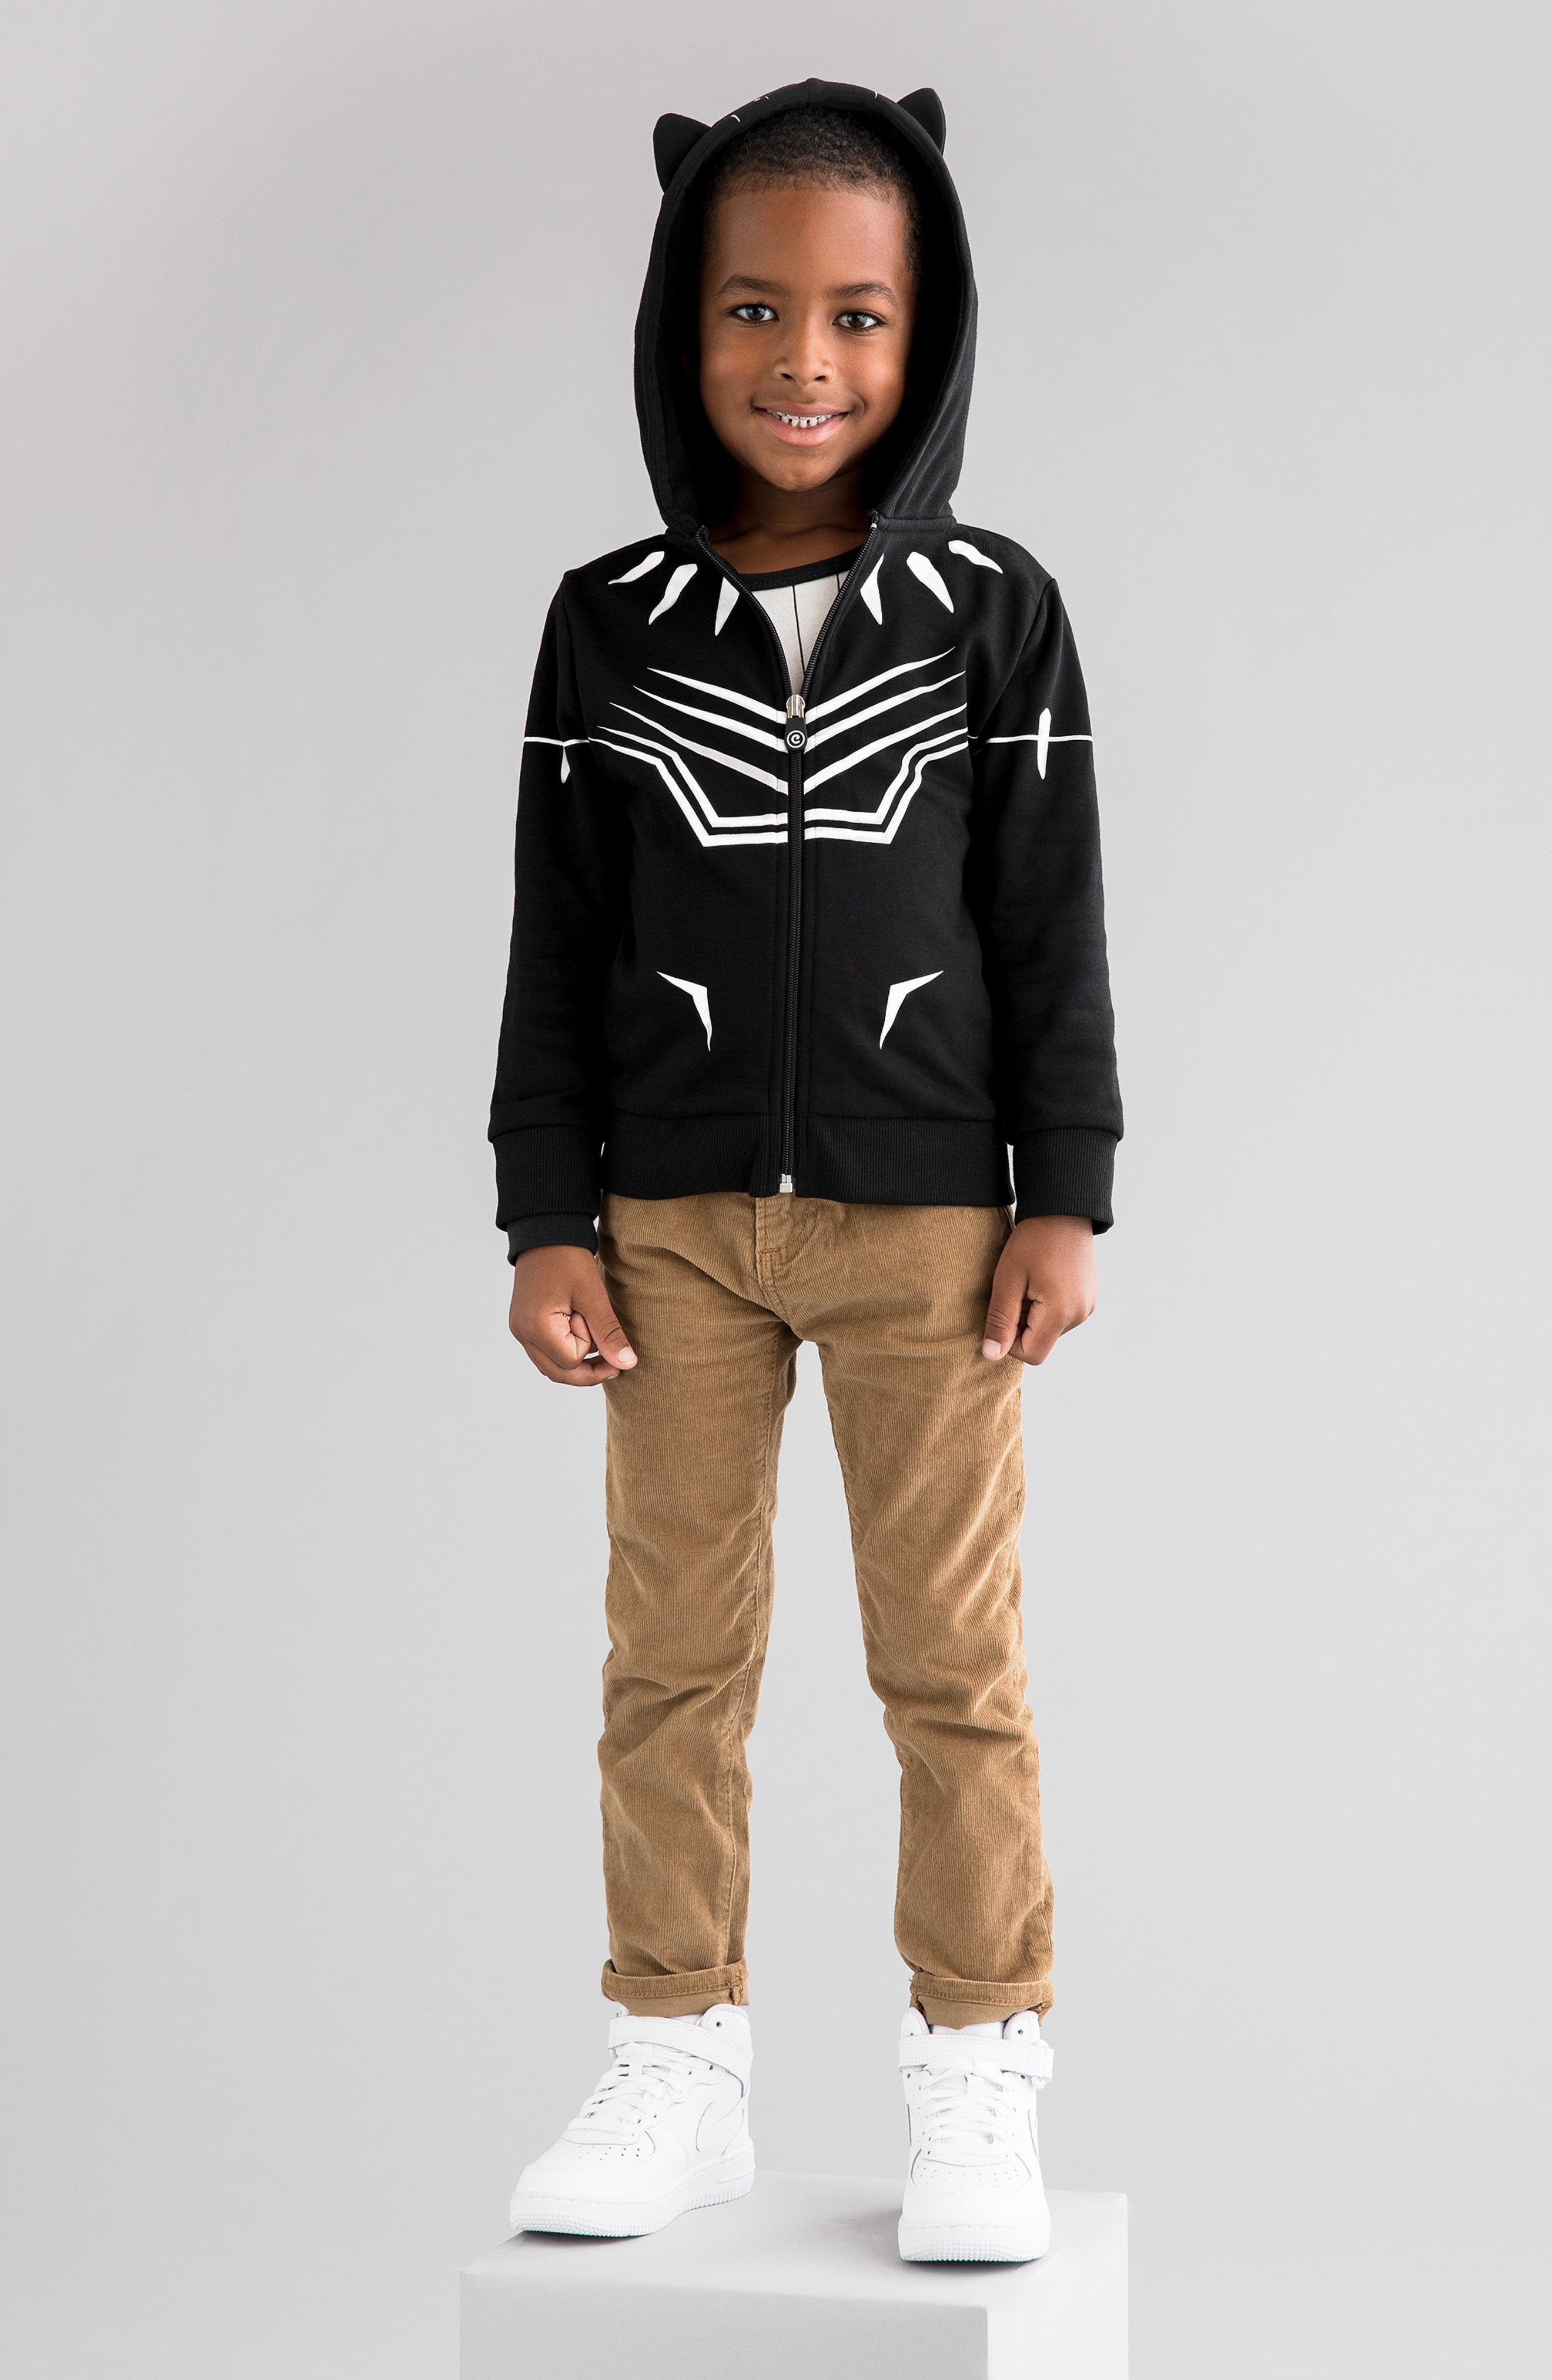 CUBCOATS, Marvel<sup>®</sup> 2018 Black Panther<sup>®</sup> 2-in-1 Stuffed Animal Hoodie, Alternate thumbnail 10, color, BLACK